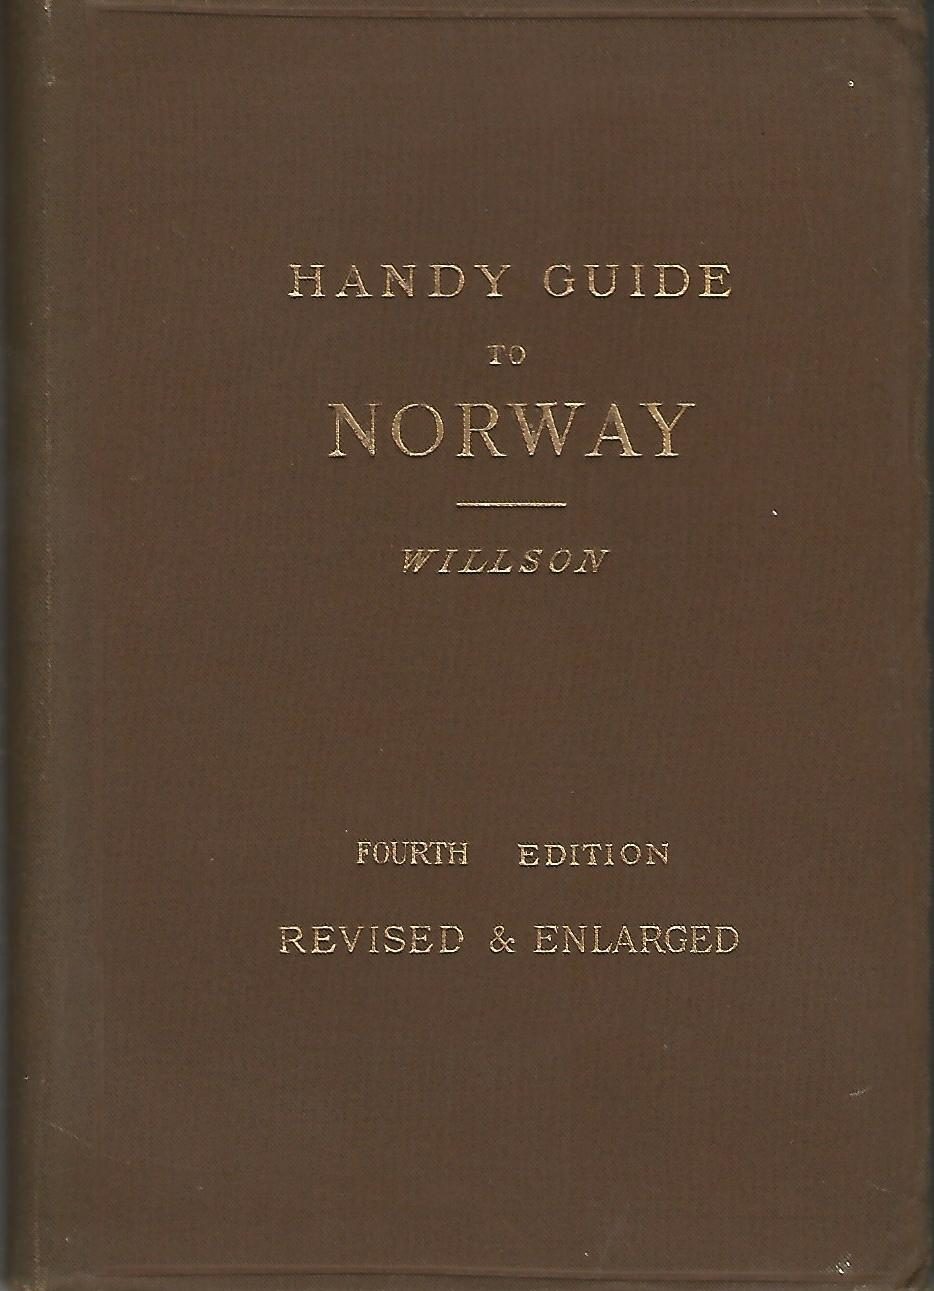 Image for Handy Guide to Norway with Maps and Appendices on: The History of Norway, Fishing Notes and Photography, Glacier Climbing, Cycling in Norway.